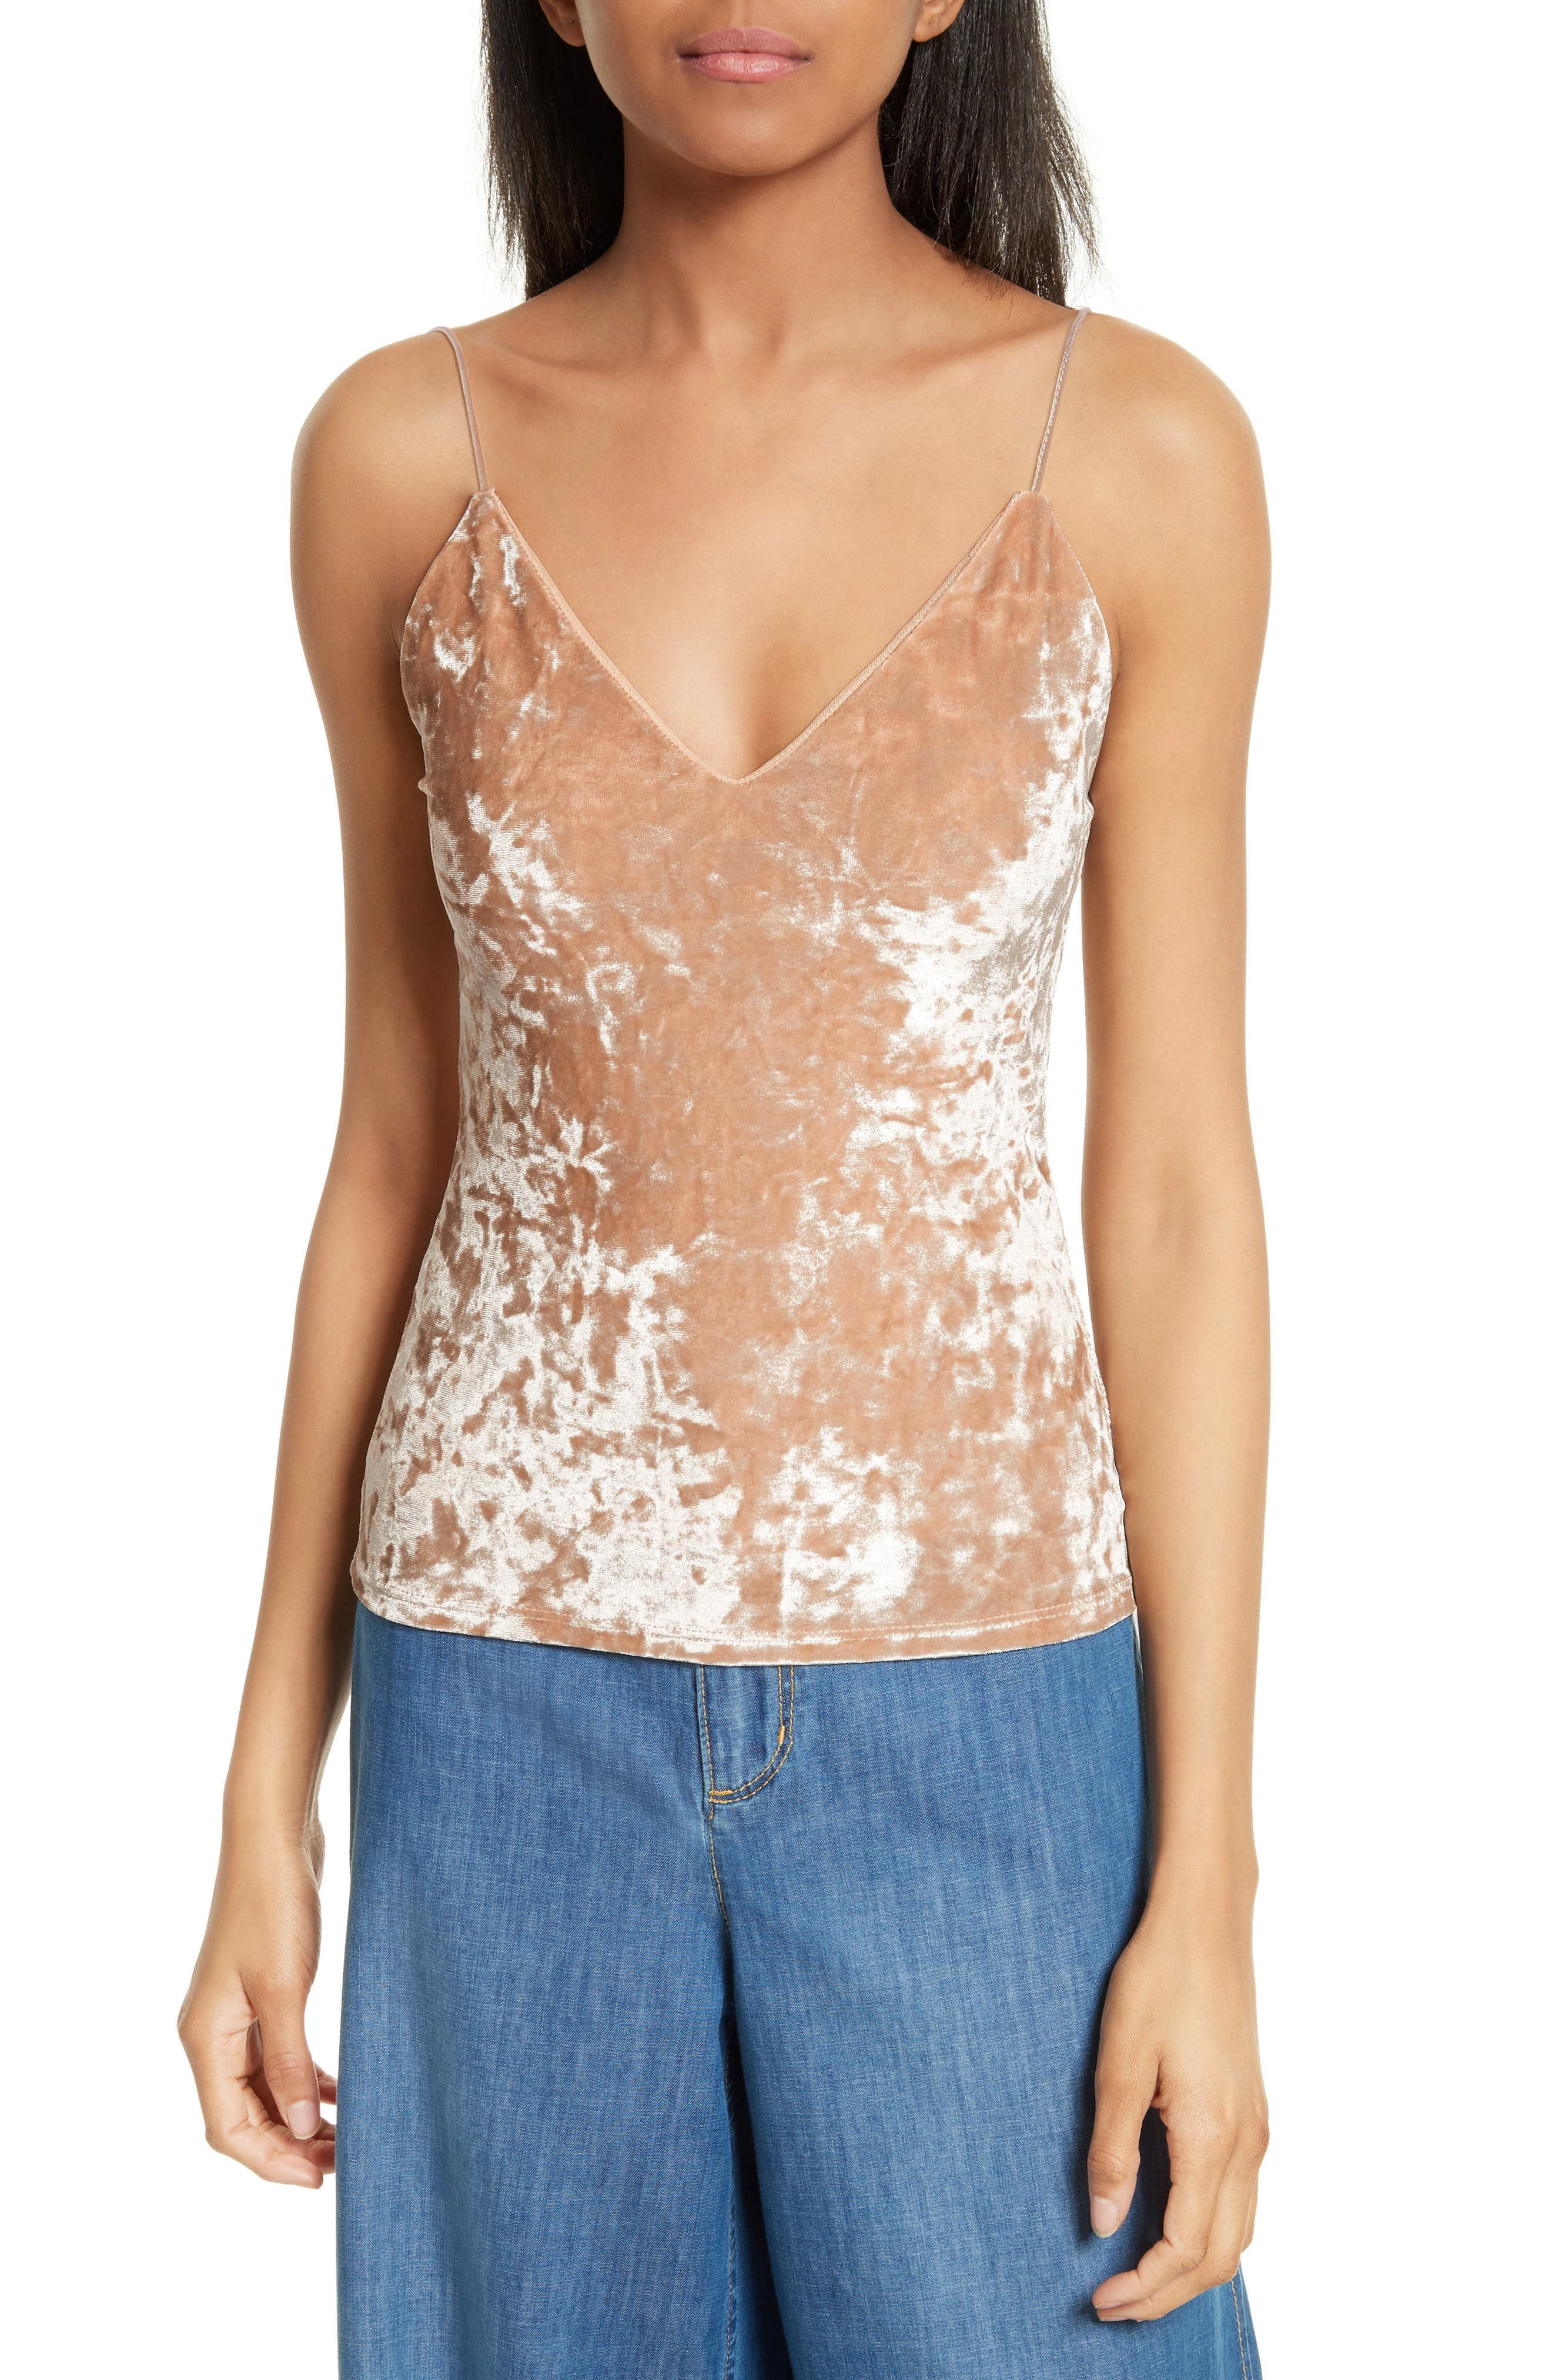 Delray Crushed Velvet Camisole,                             Main thumbnail 1, color,                             Natural